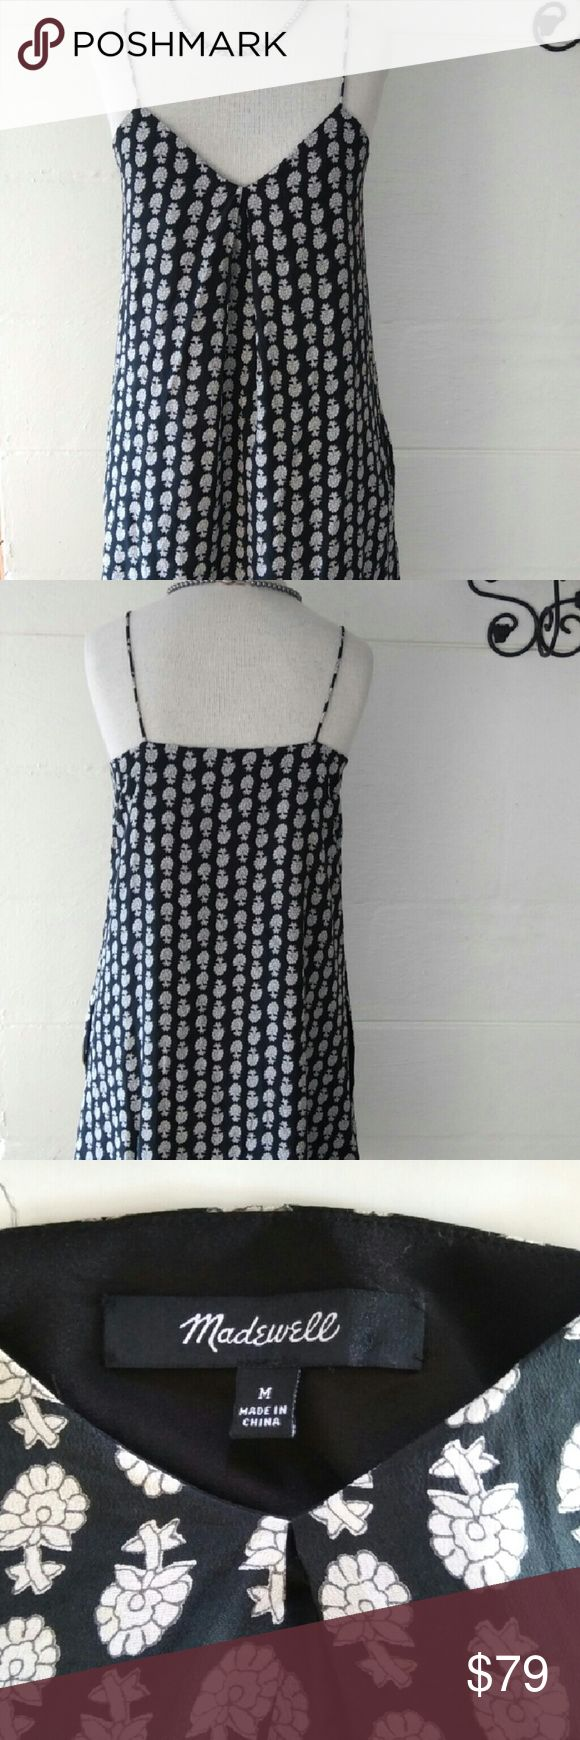 "Madewell Spaghetti Starp Dress Up to the minuet style dress. Side peaks at the hem line.  Shift style.  Sure to get tons of compliments wearing this darling dress. NWOT. Bust. 35"" length 35"" Madewell Dresses Mini"